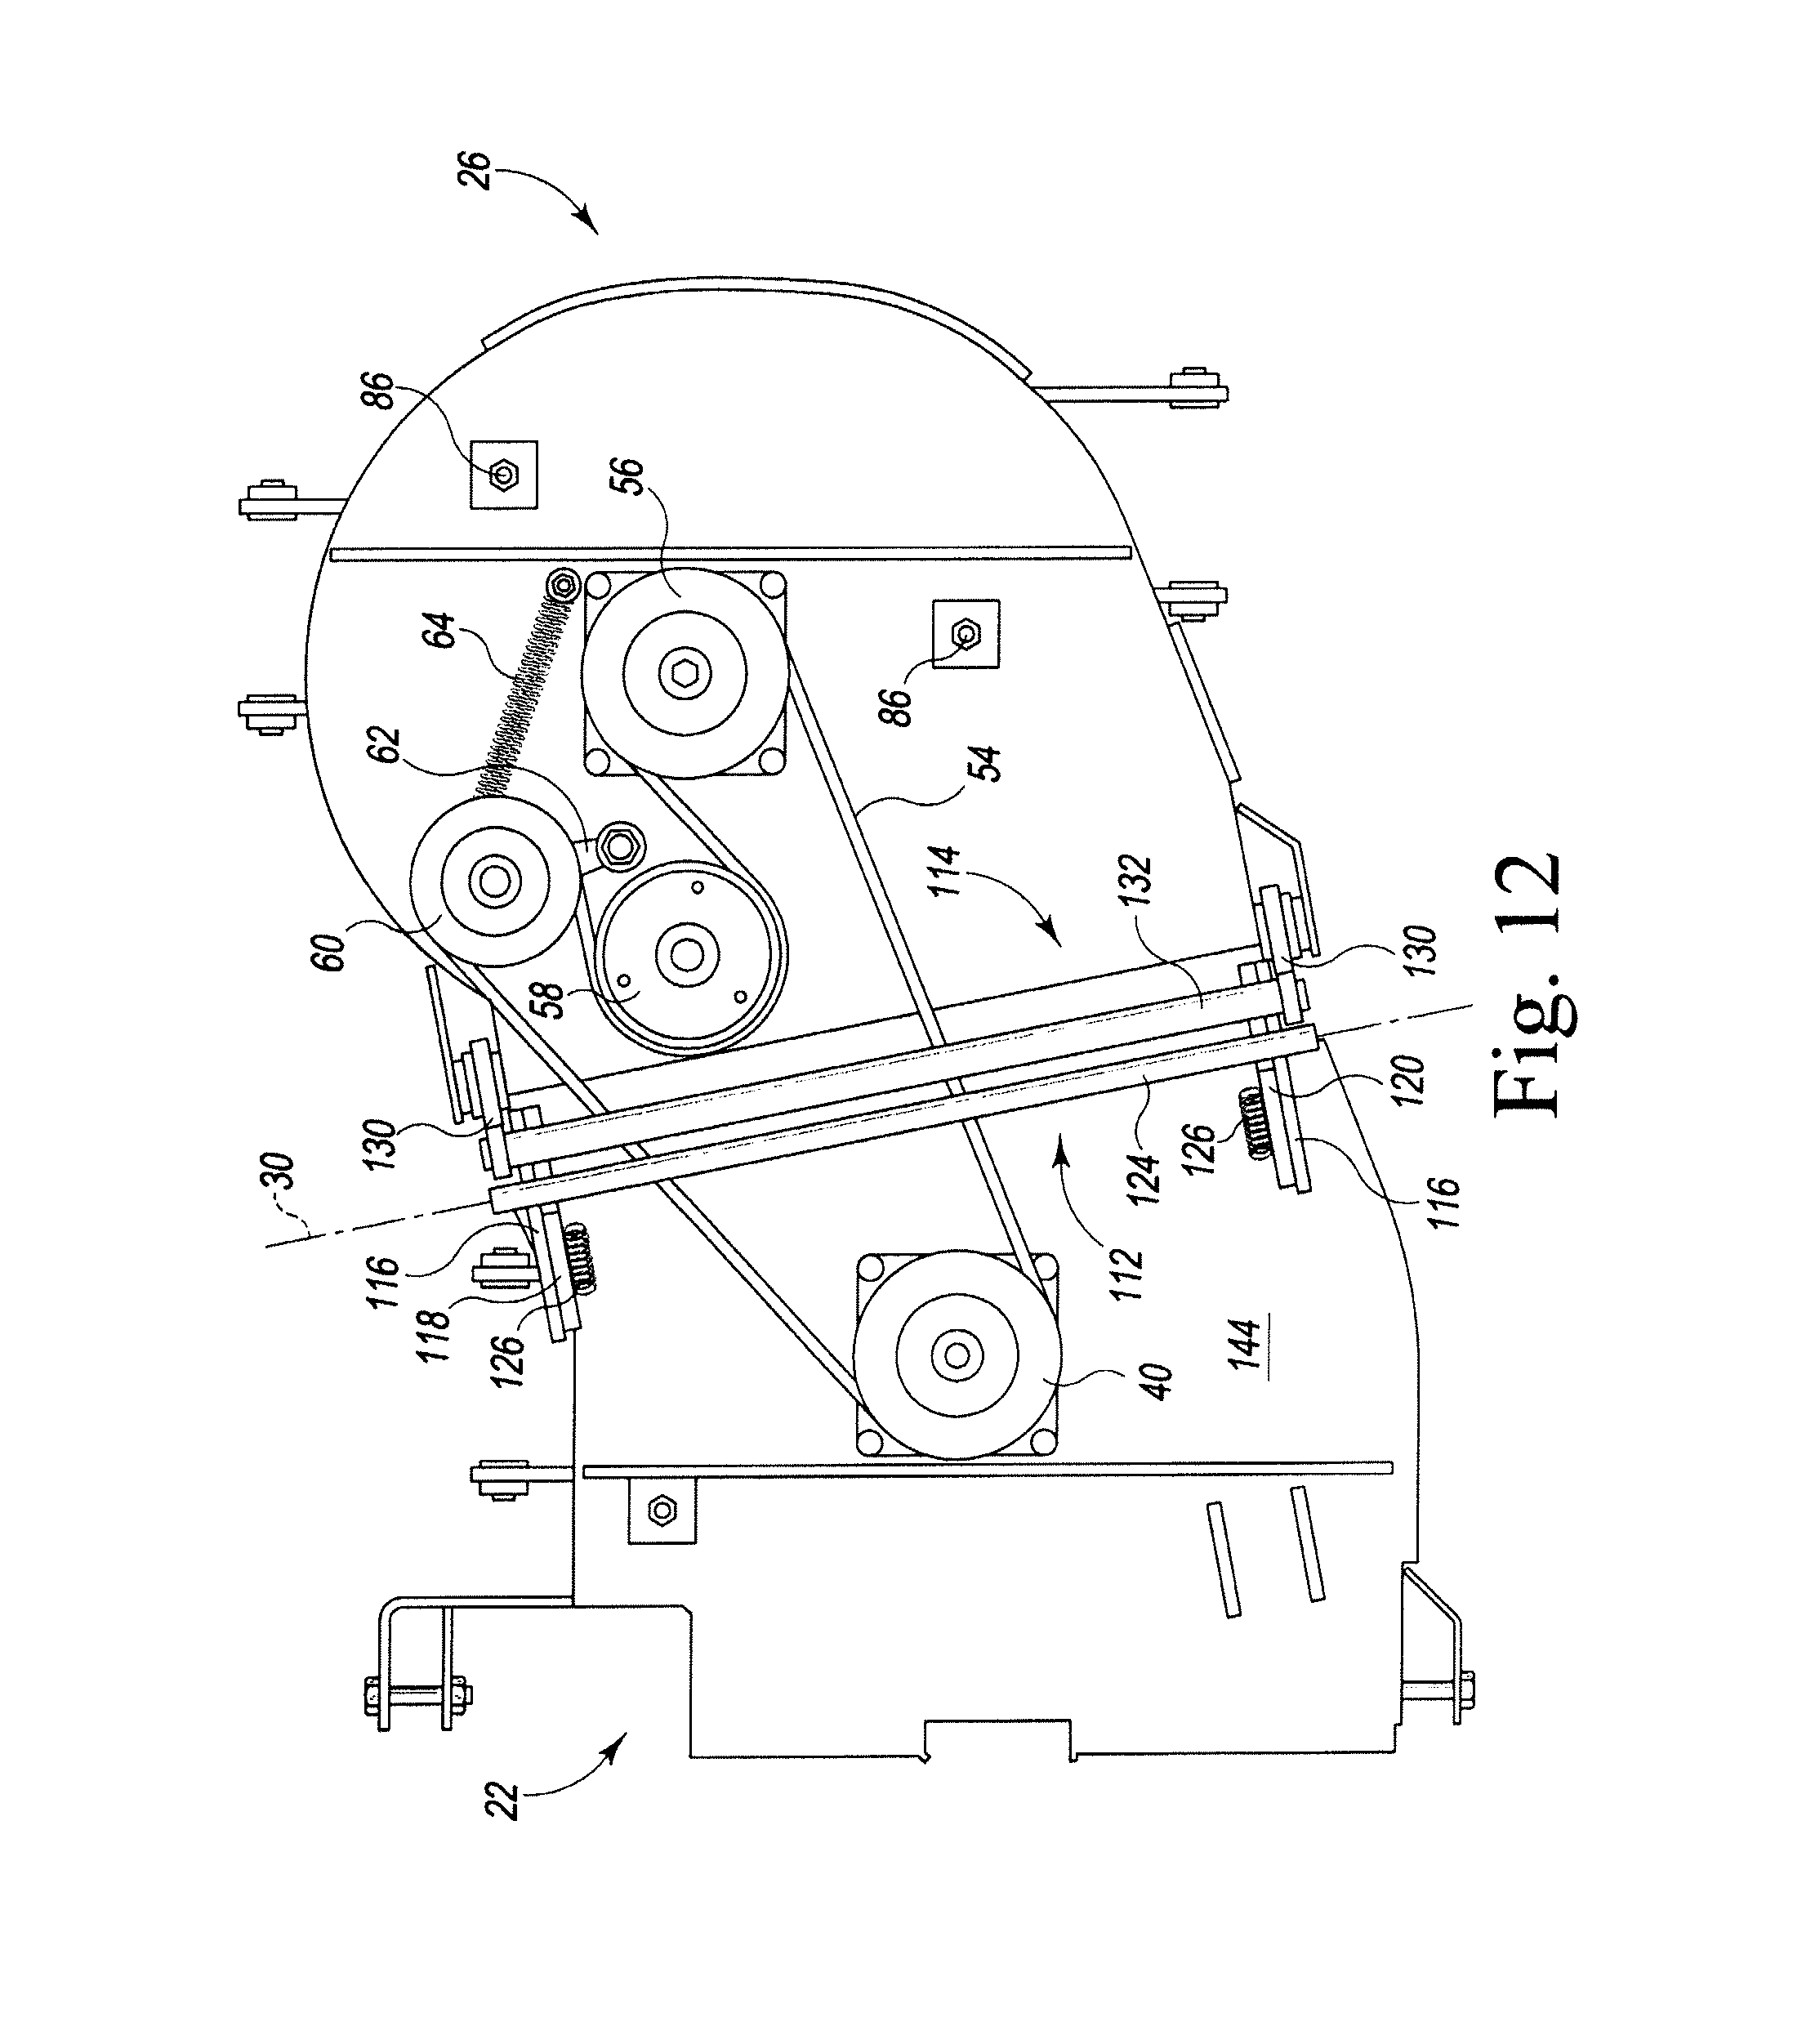 patent us7841157 latch for a pivoting mower deck patents John Deere 318 50 Inch Mower Deck patent drawing